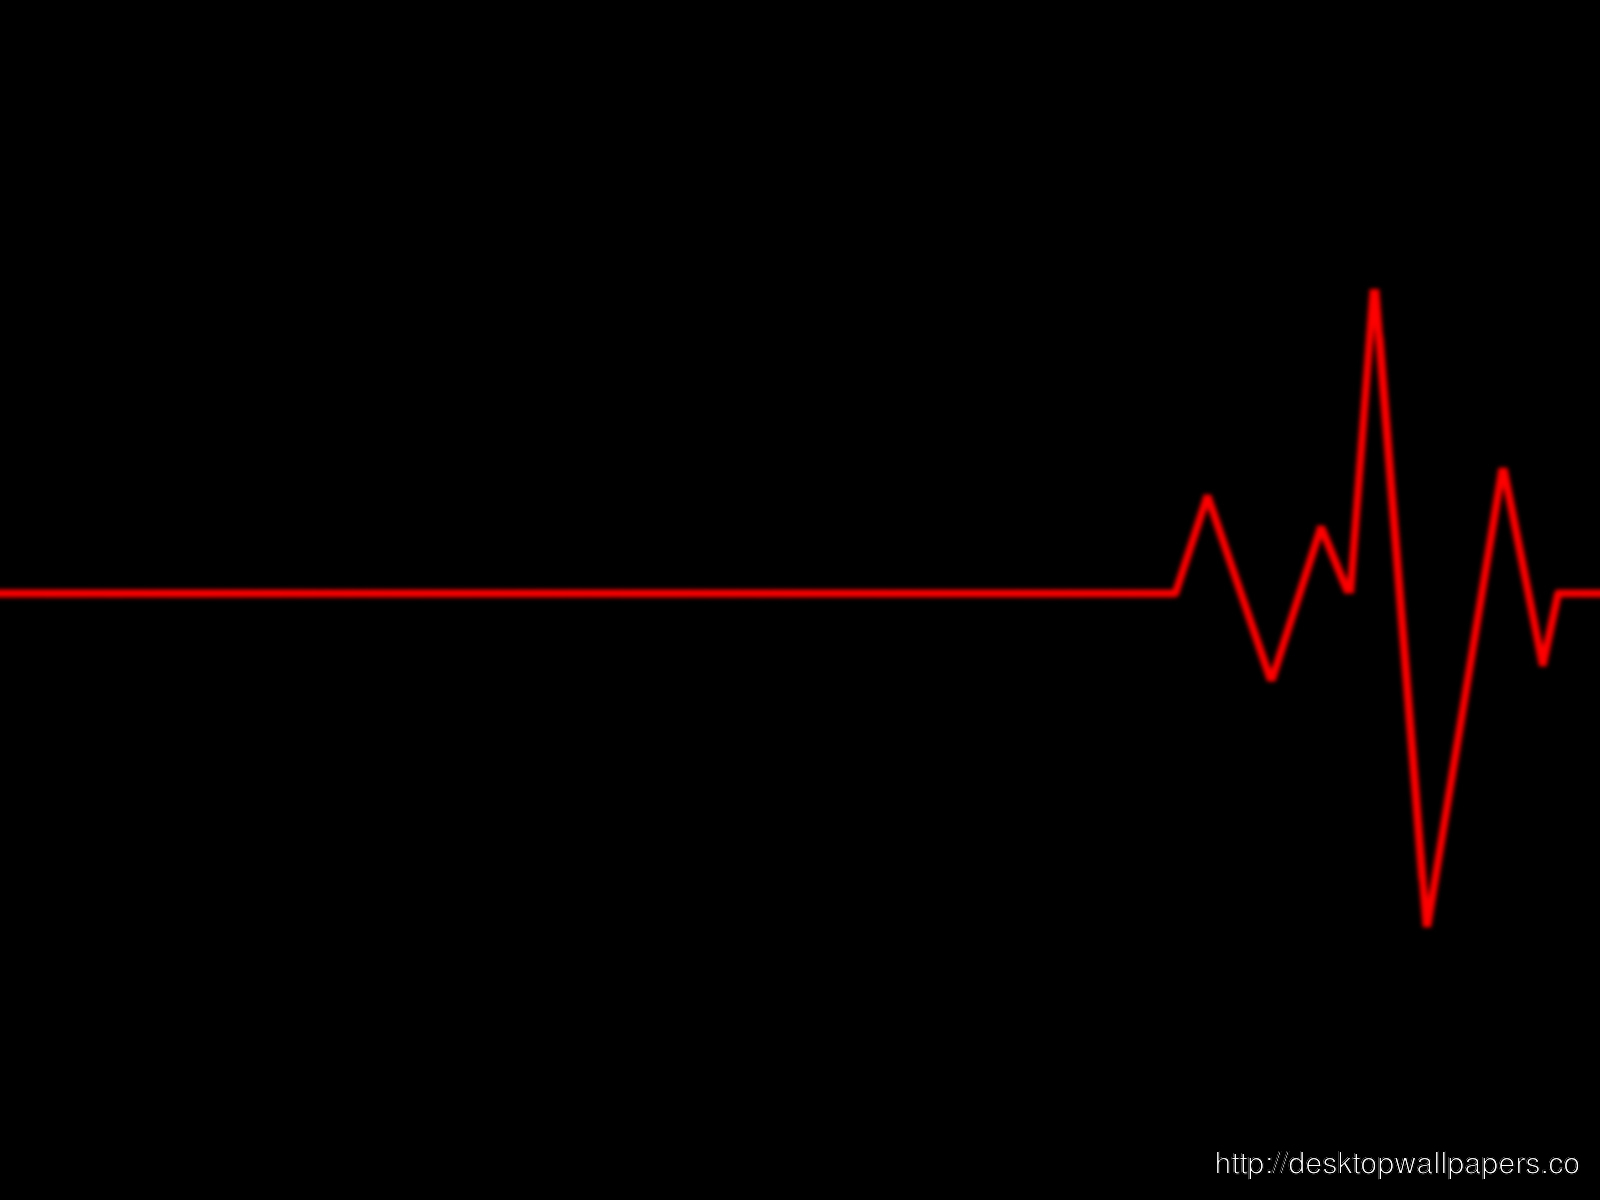 Wallpaper Black And Red Lifeline Hd Wallpaper Wallpaper black and 1600x1200